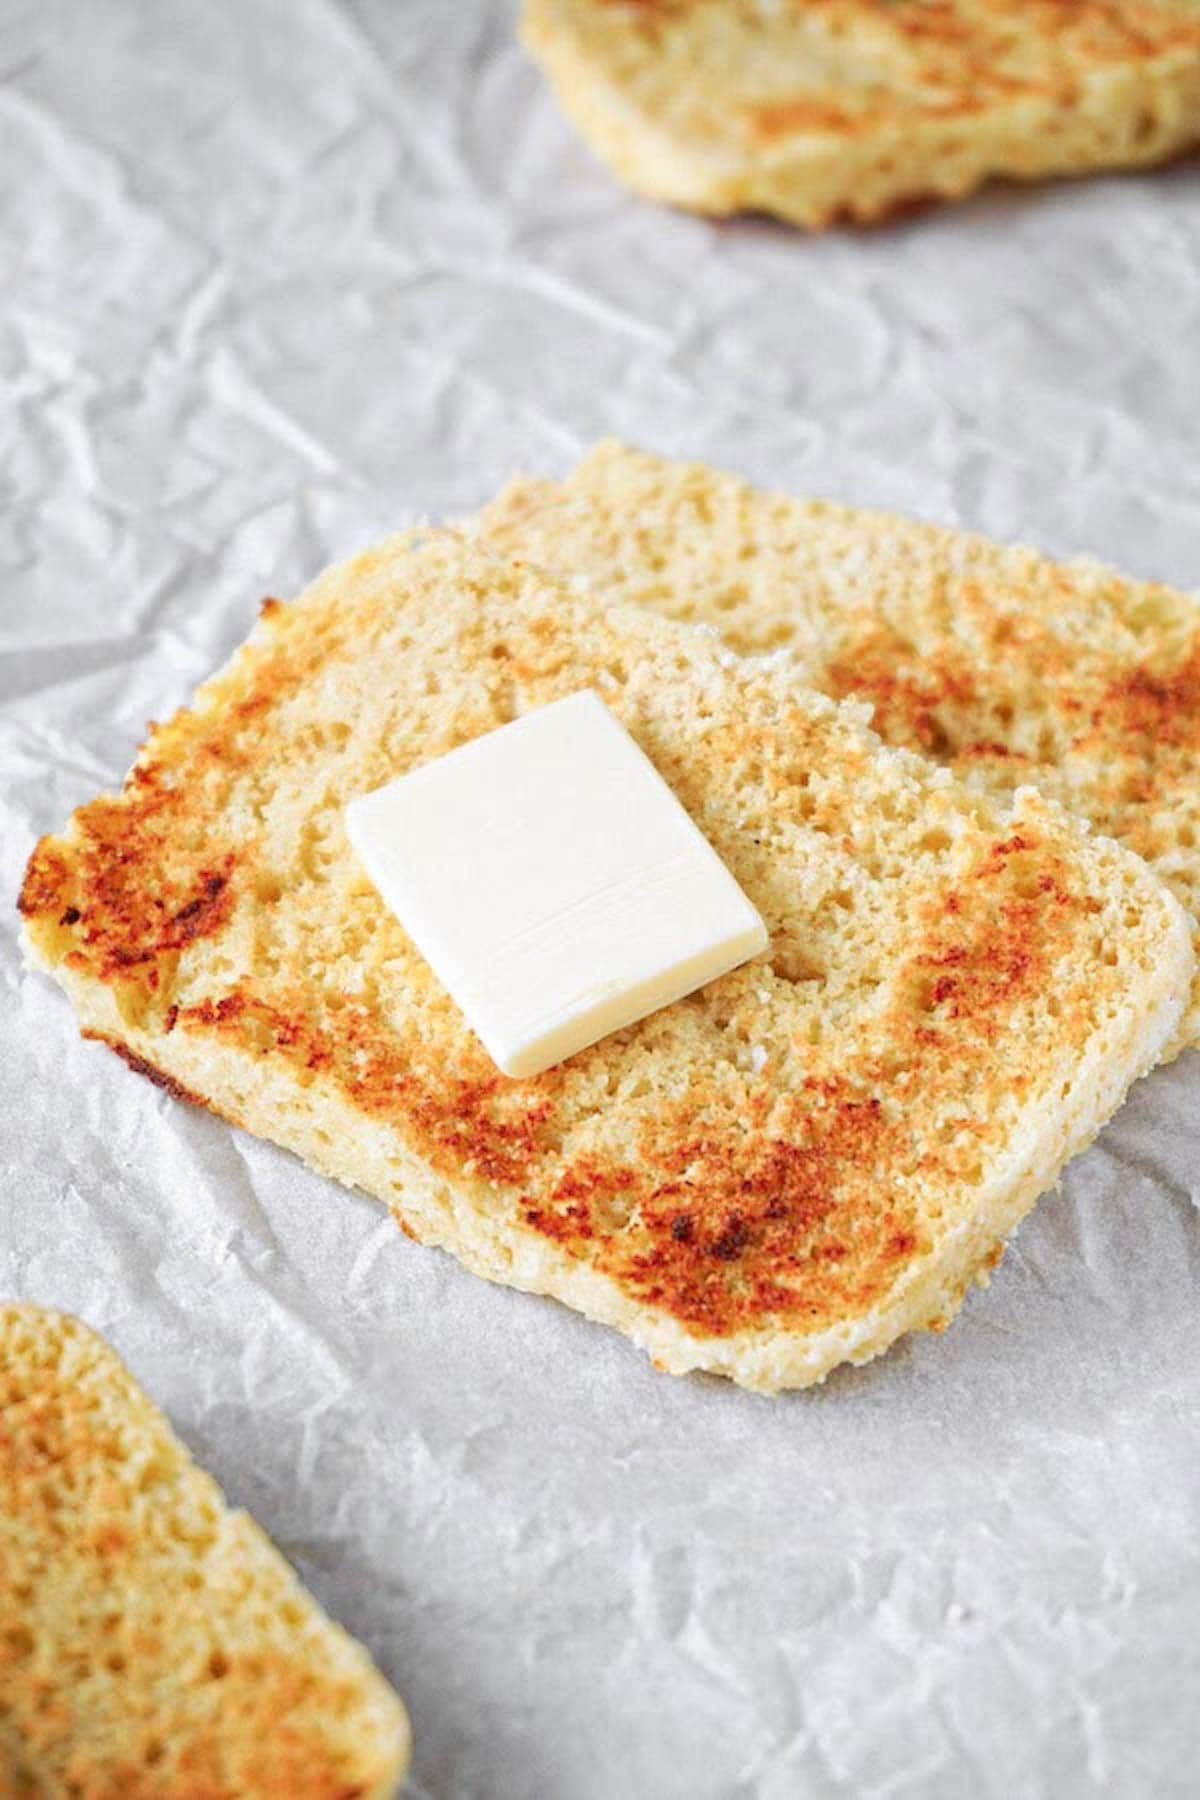 2 slices of microwave bread with some butter on top lying on a white parchment paper.